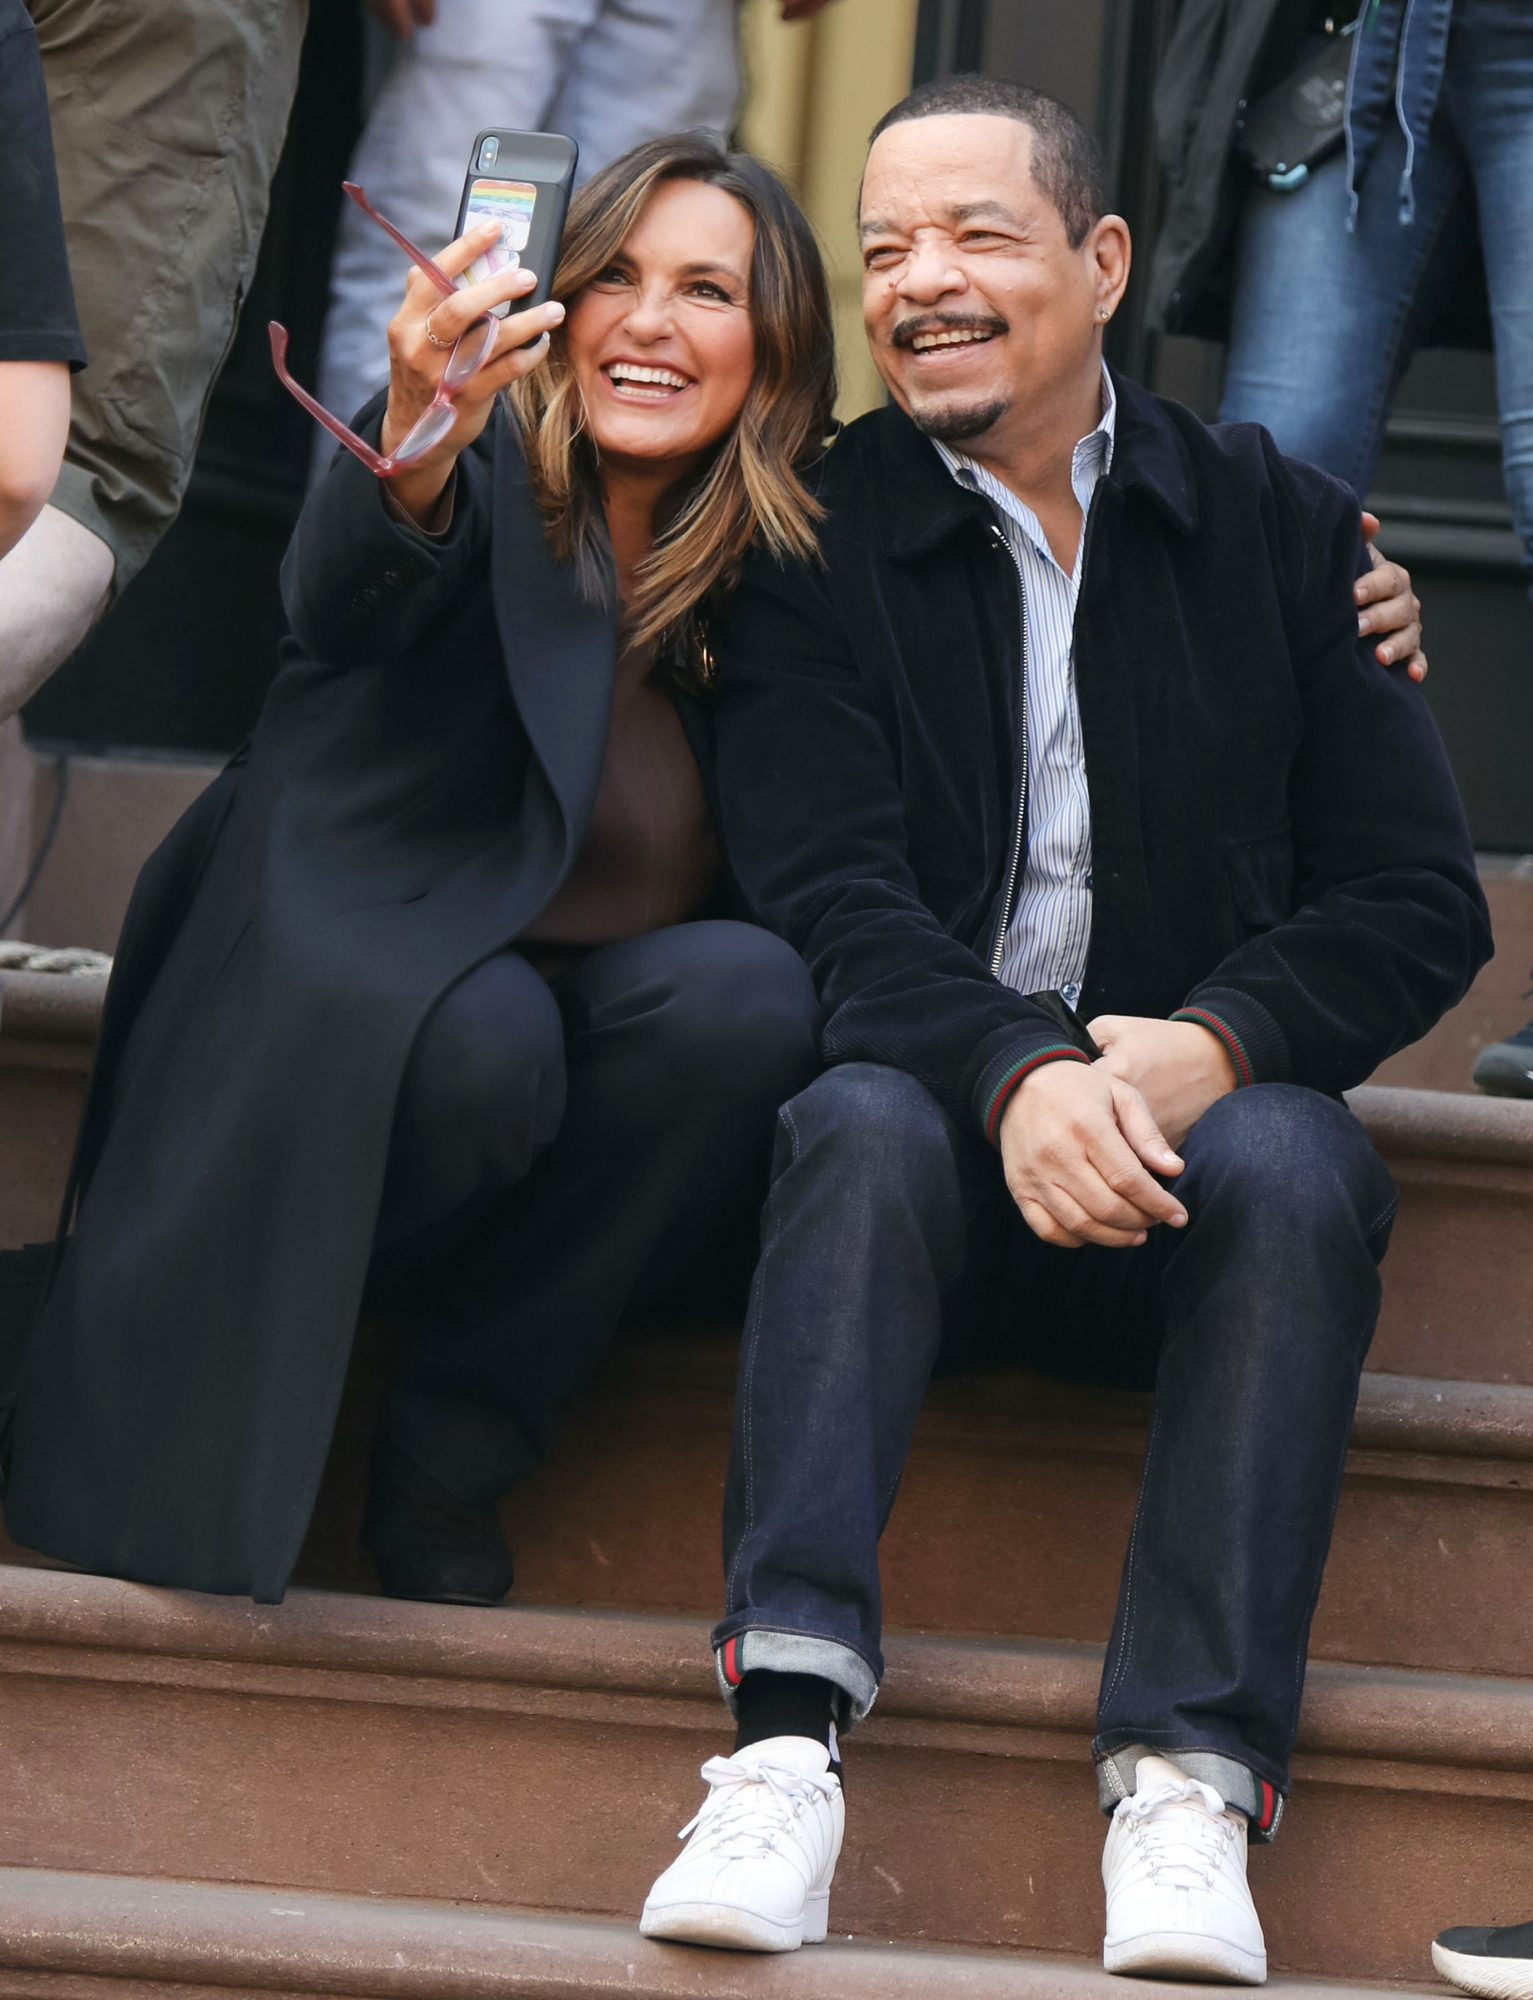 Mariska Hargitay and Ice T are seen at the film set of the 'Law and Order: Special Victims Unit' TV Series on April 12, 2021 in New York City